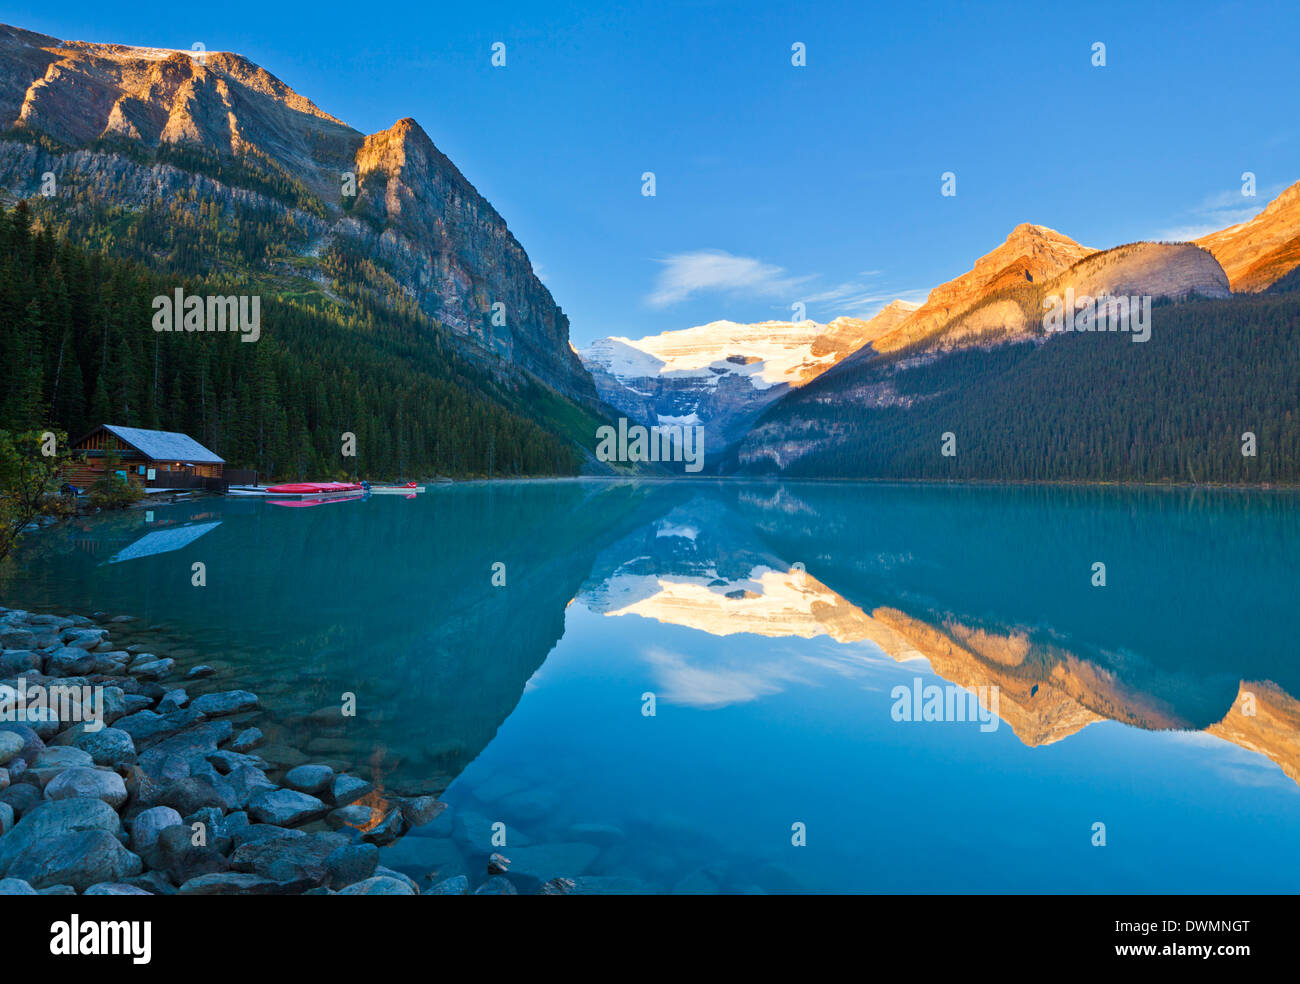 Early morning sunrise, Lake Louise, Banff National Park, UNESCO World Heritage Site, Alberta, Canadian Rockies, Canada - Stock Image